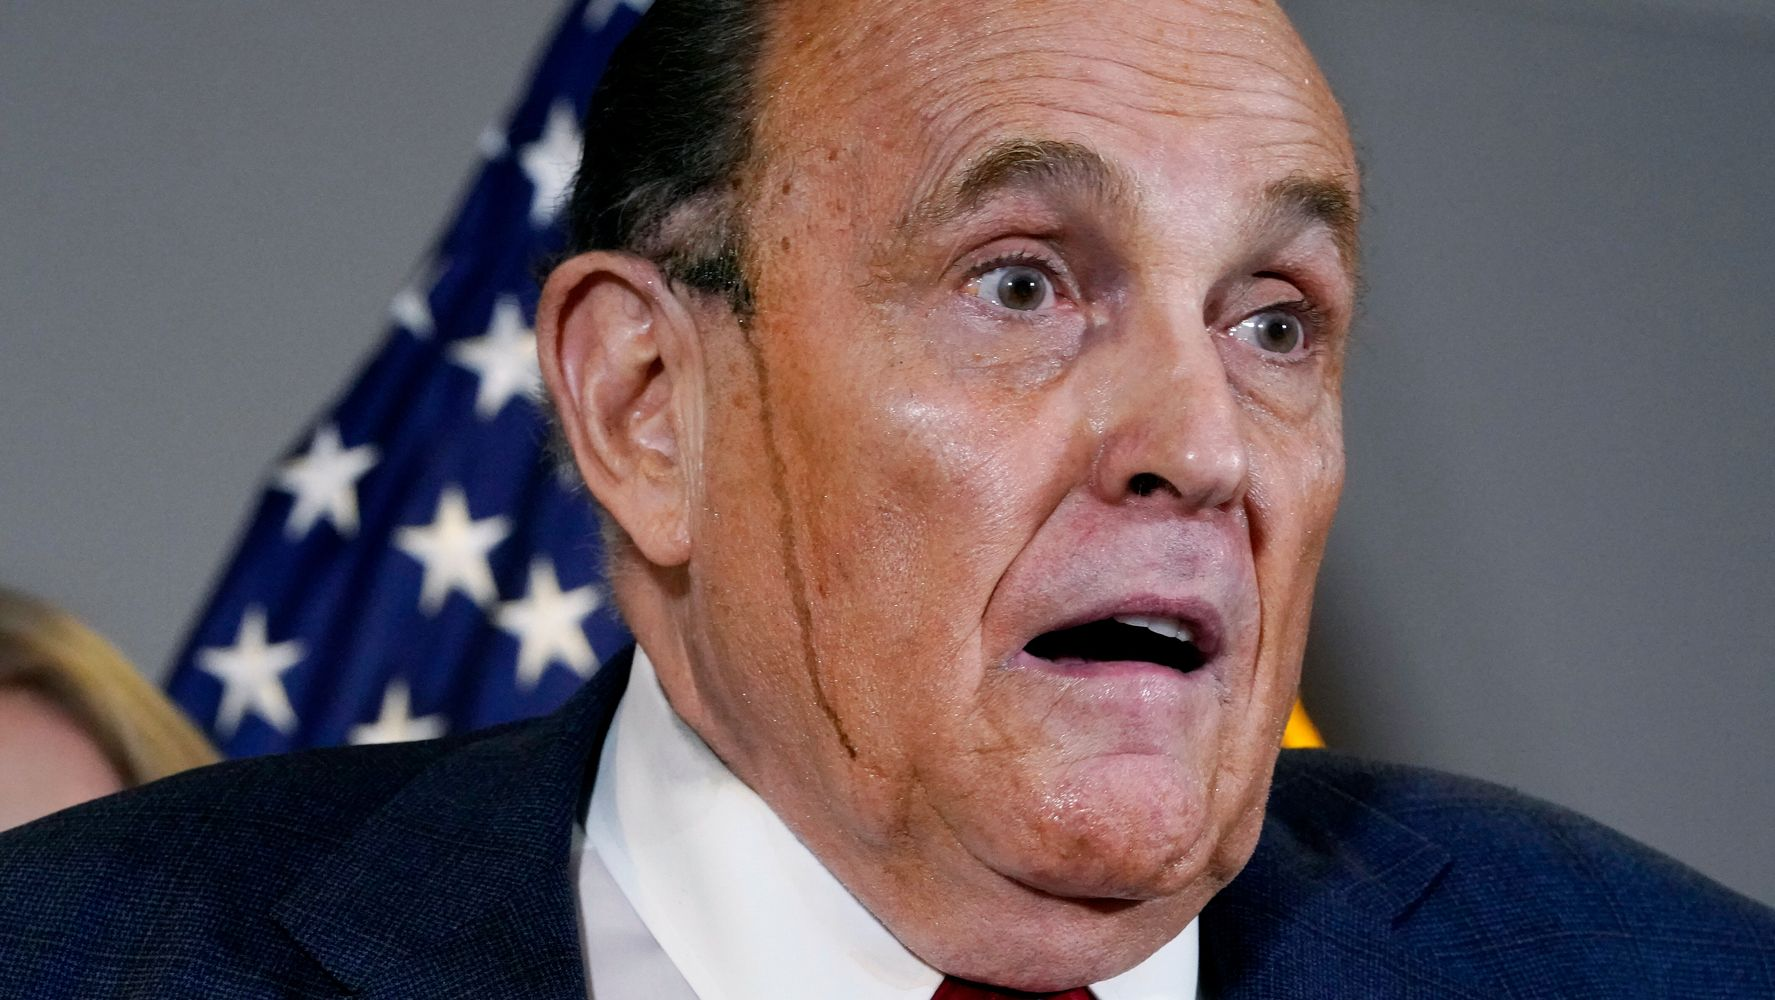 Rudy Giuliani Tests Positive For COVID-19, Trump Says